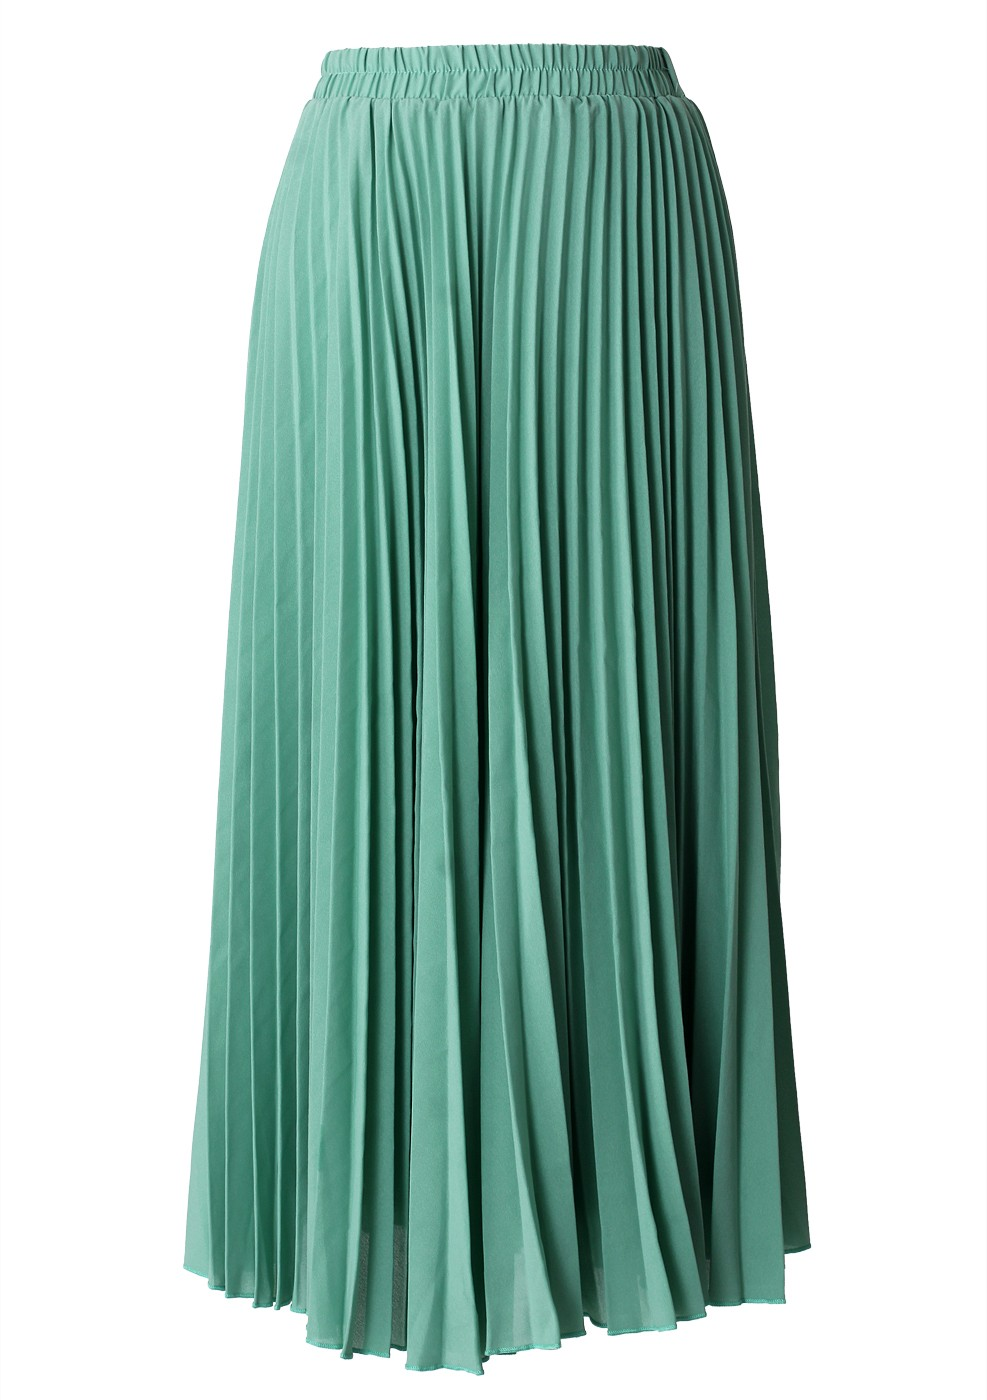 green pleated maxi skirt retro and unique fashion